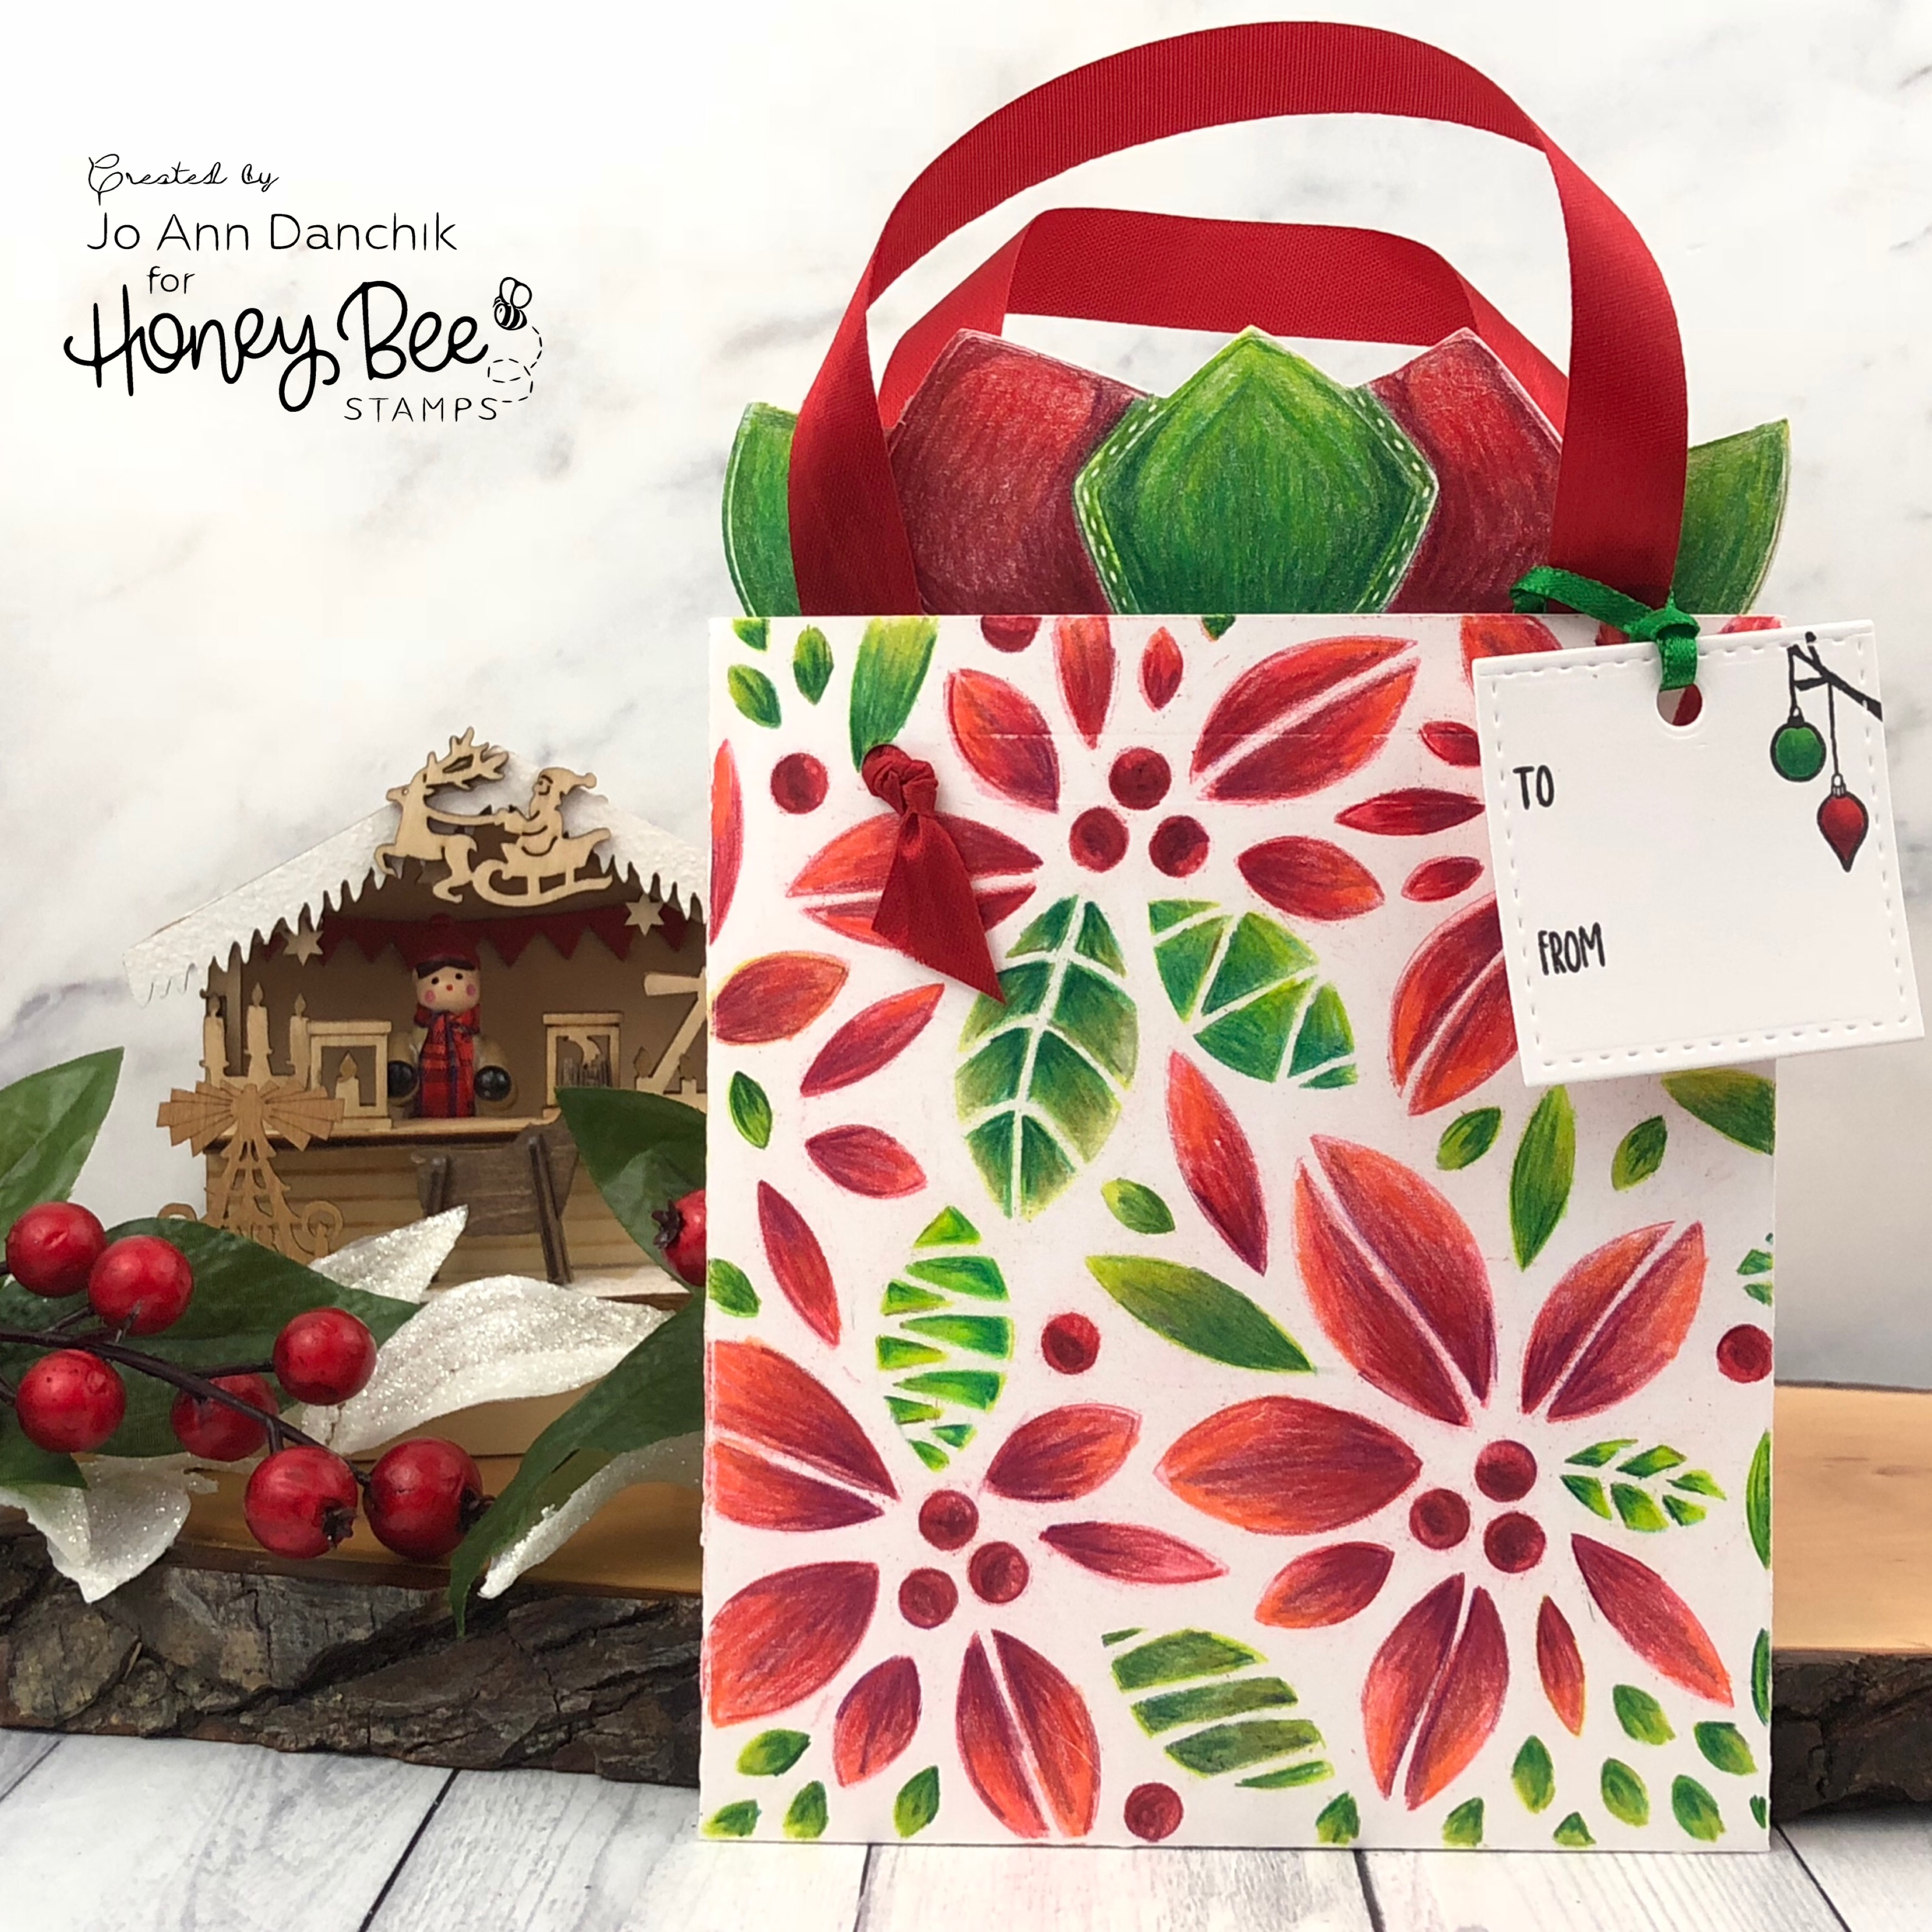 Creative Sundays With Jo Ann: Poinsettia Gift Bag